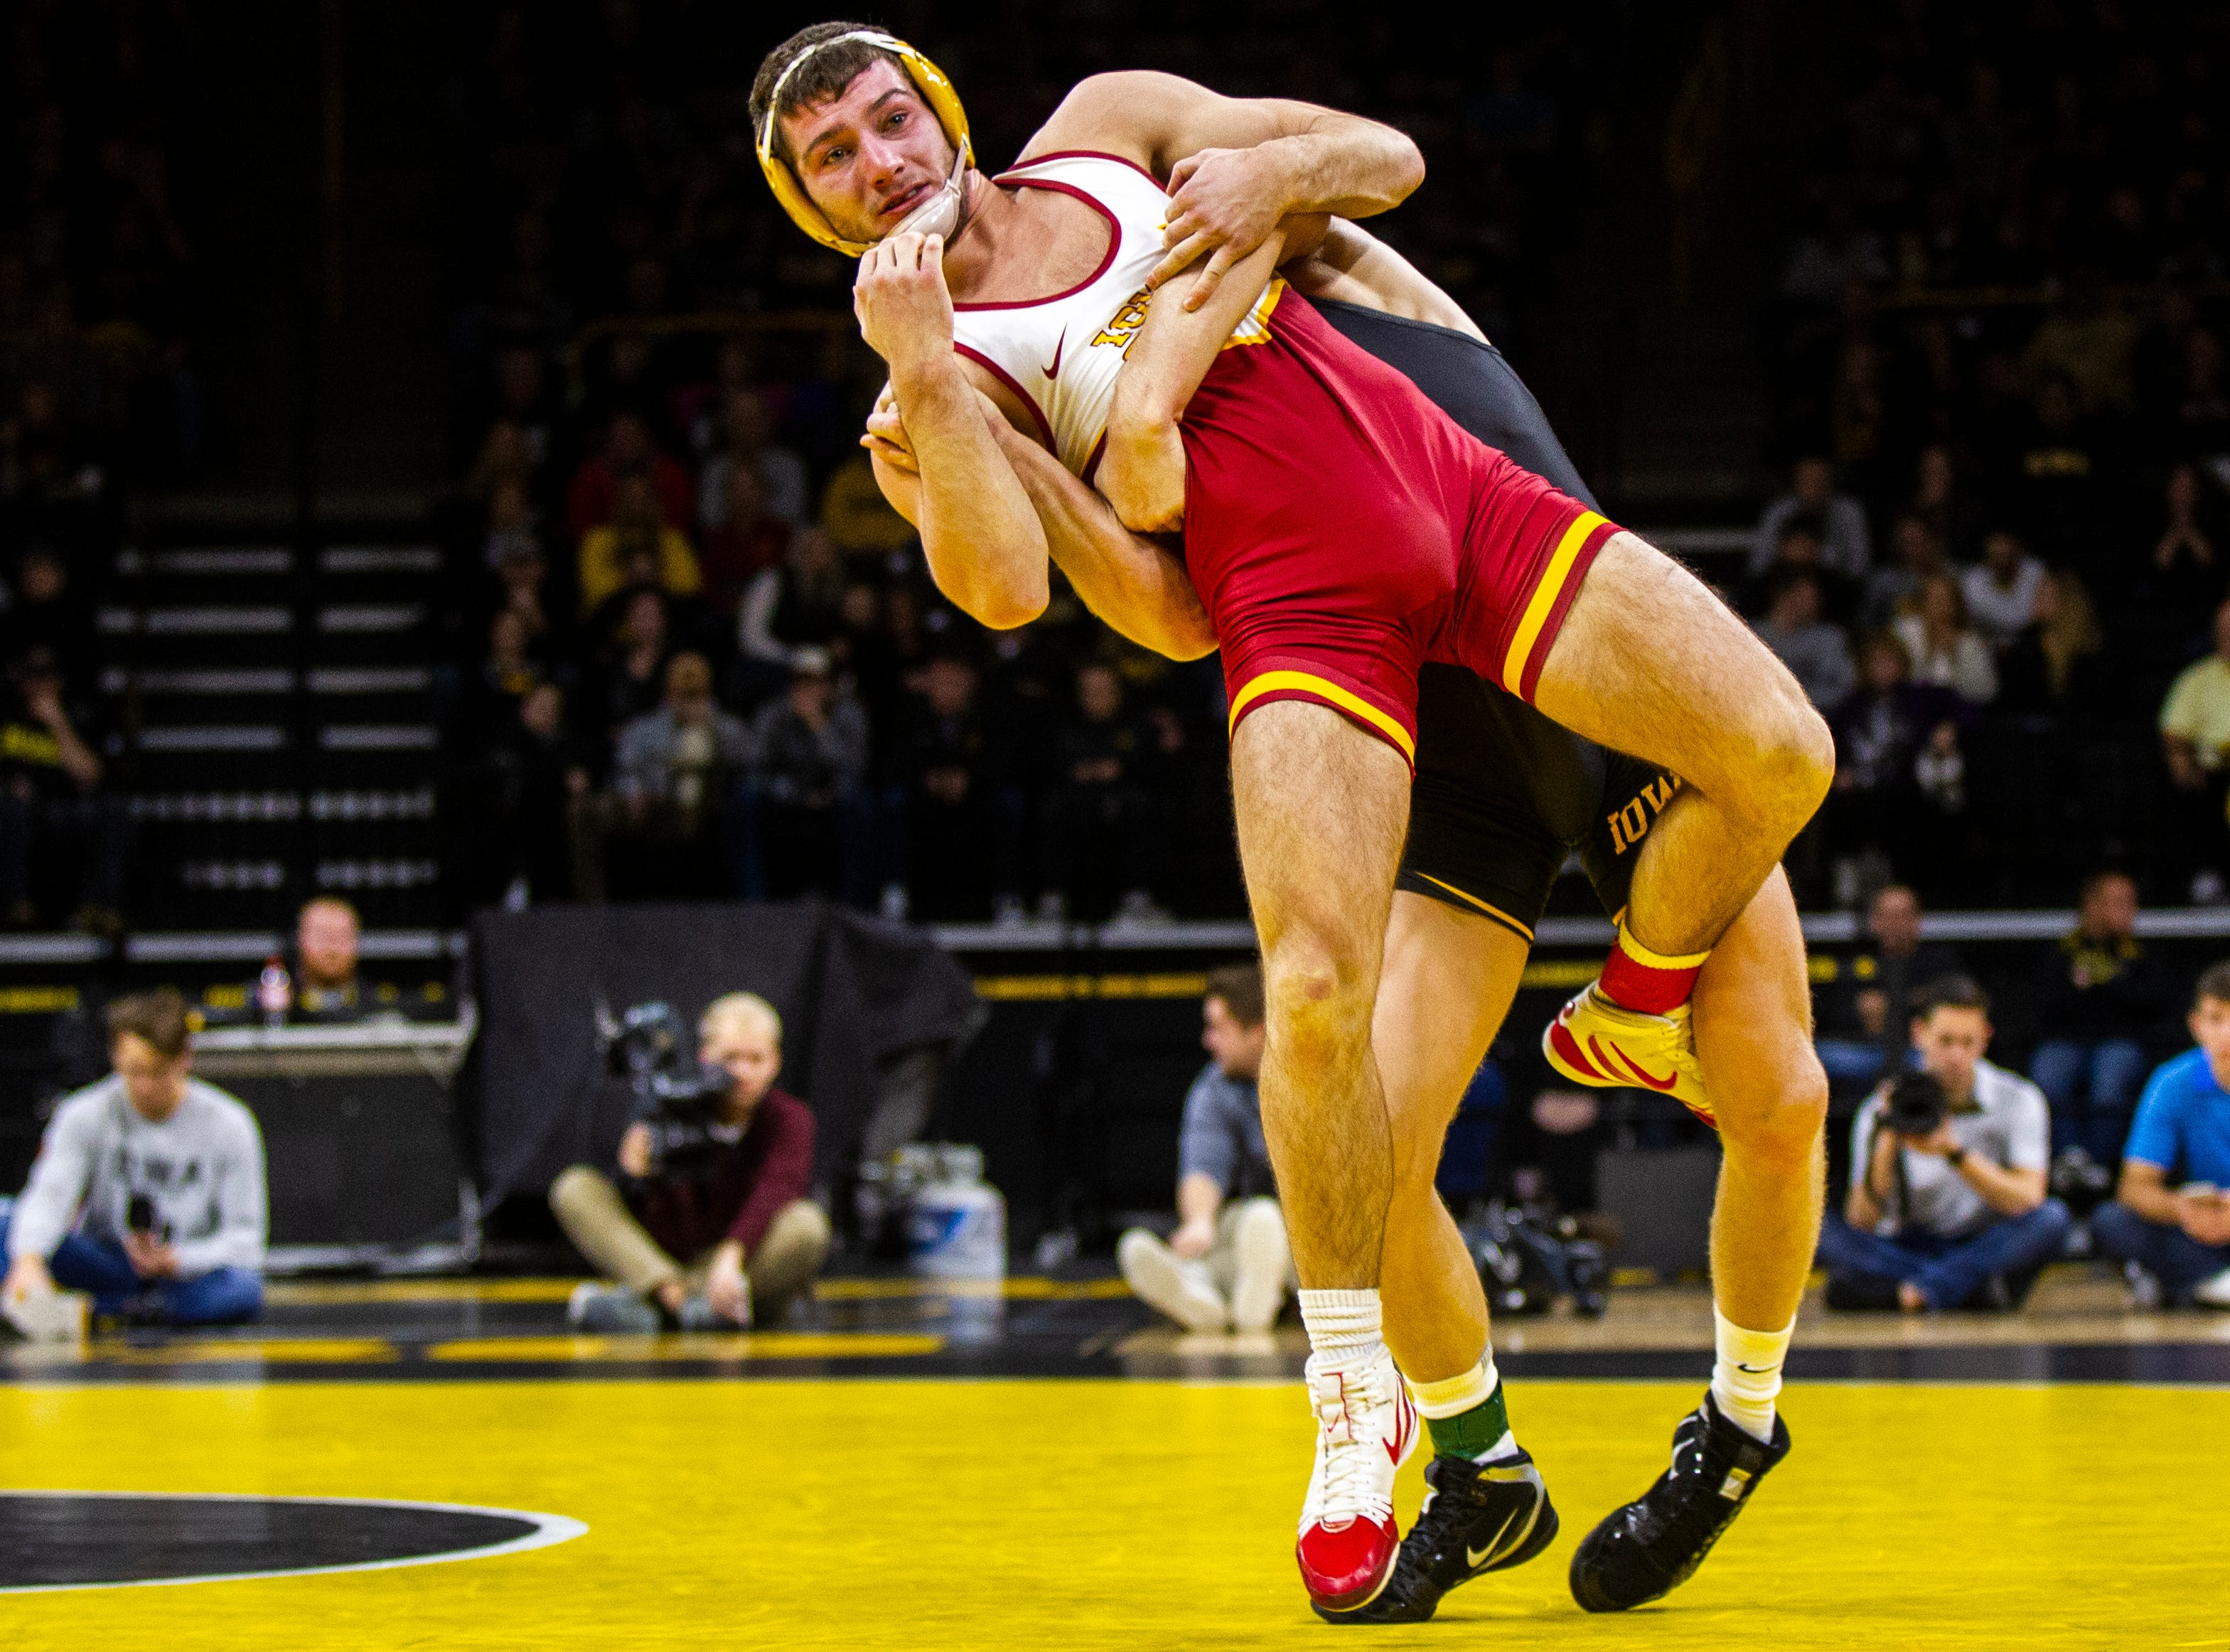 Iowa's Kaleb Young, back, wrestles Iowa State's Chase Straw at 157 during a NCAA Cy-Hawk series wrestling dual on Saturday, Dec. 1, 2018, at Carver-Hawkeye Arena in Iowa City.